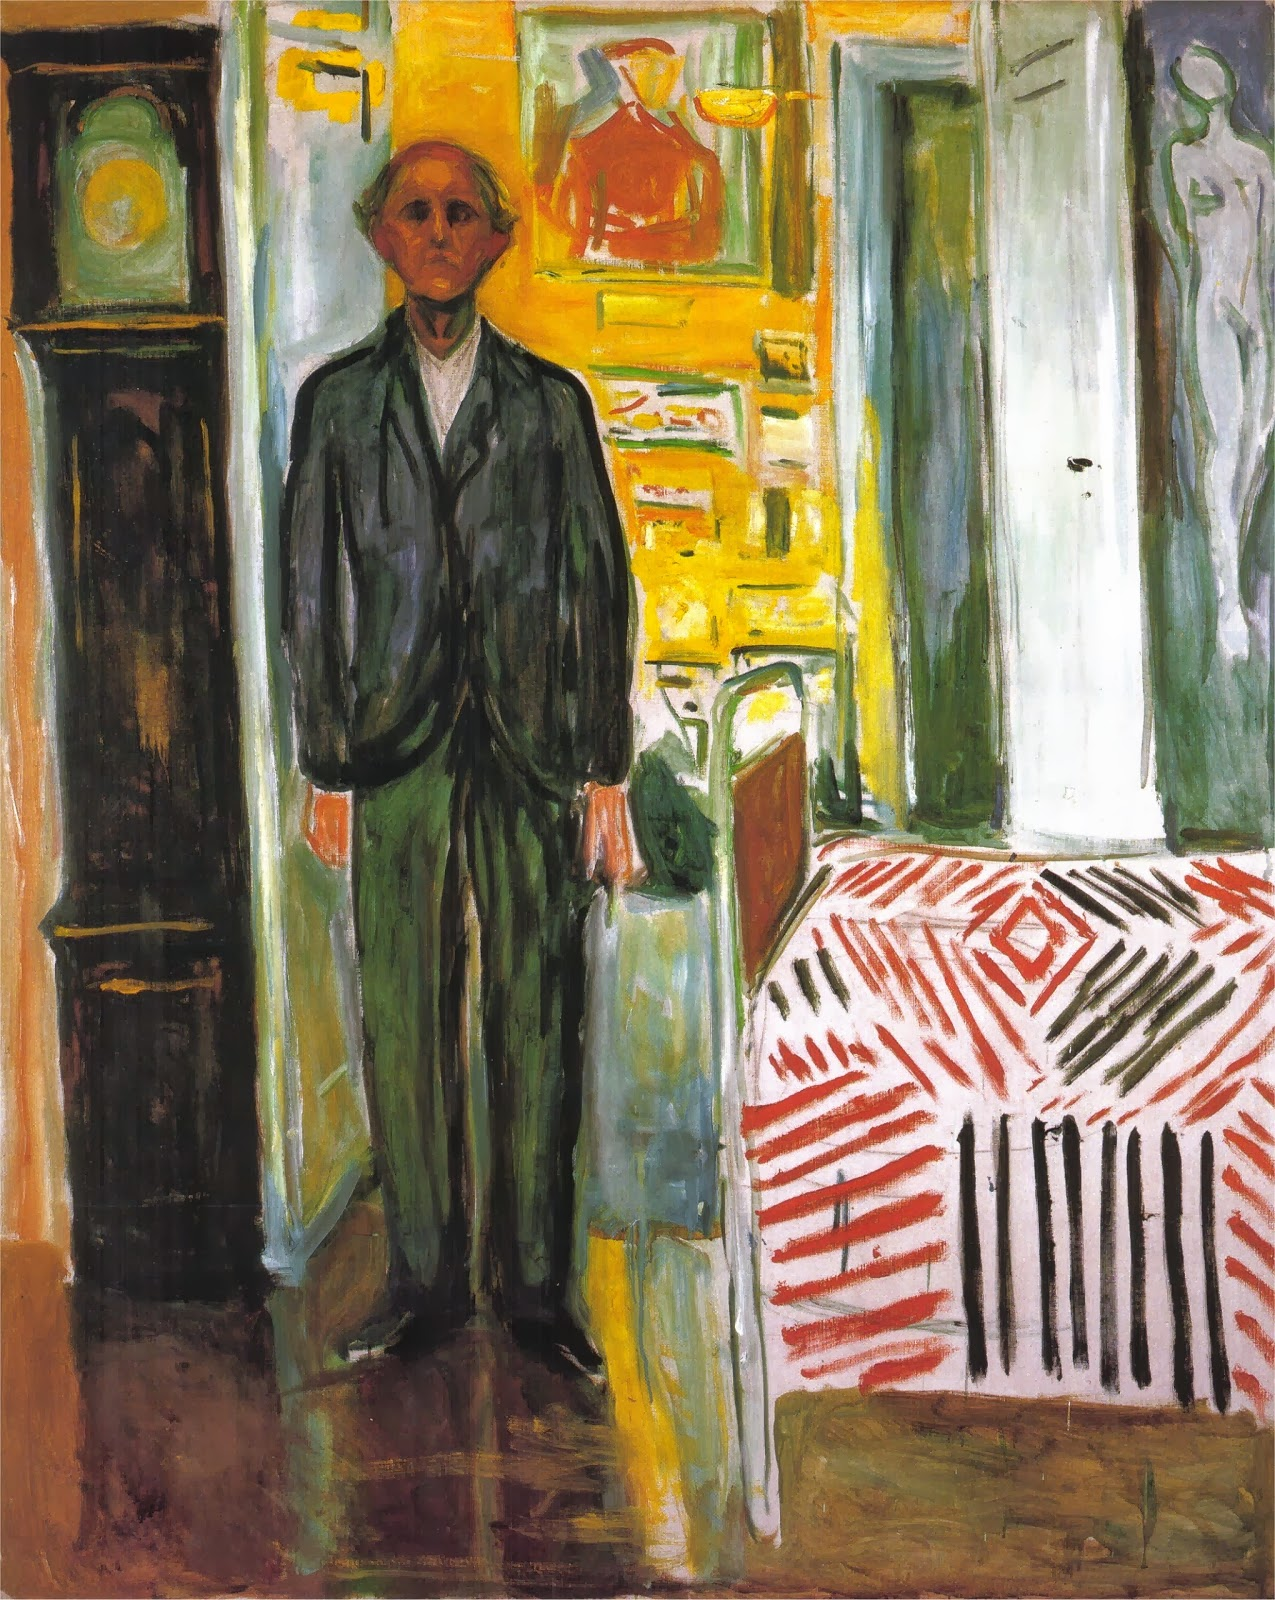 Self-Portrait. Between the Clock and the Bed, Edvard Munch (1940–43).